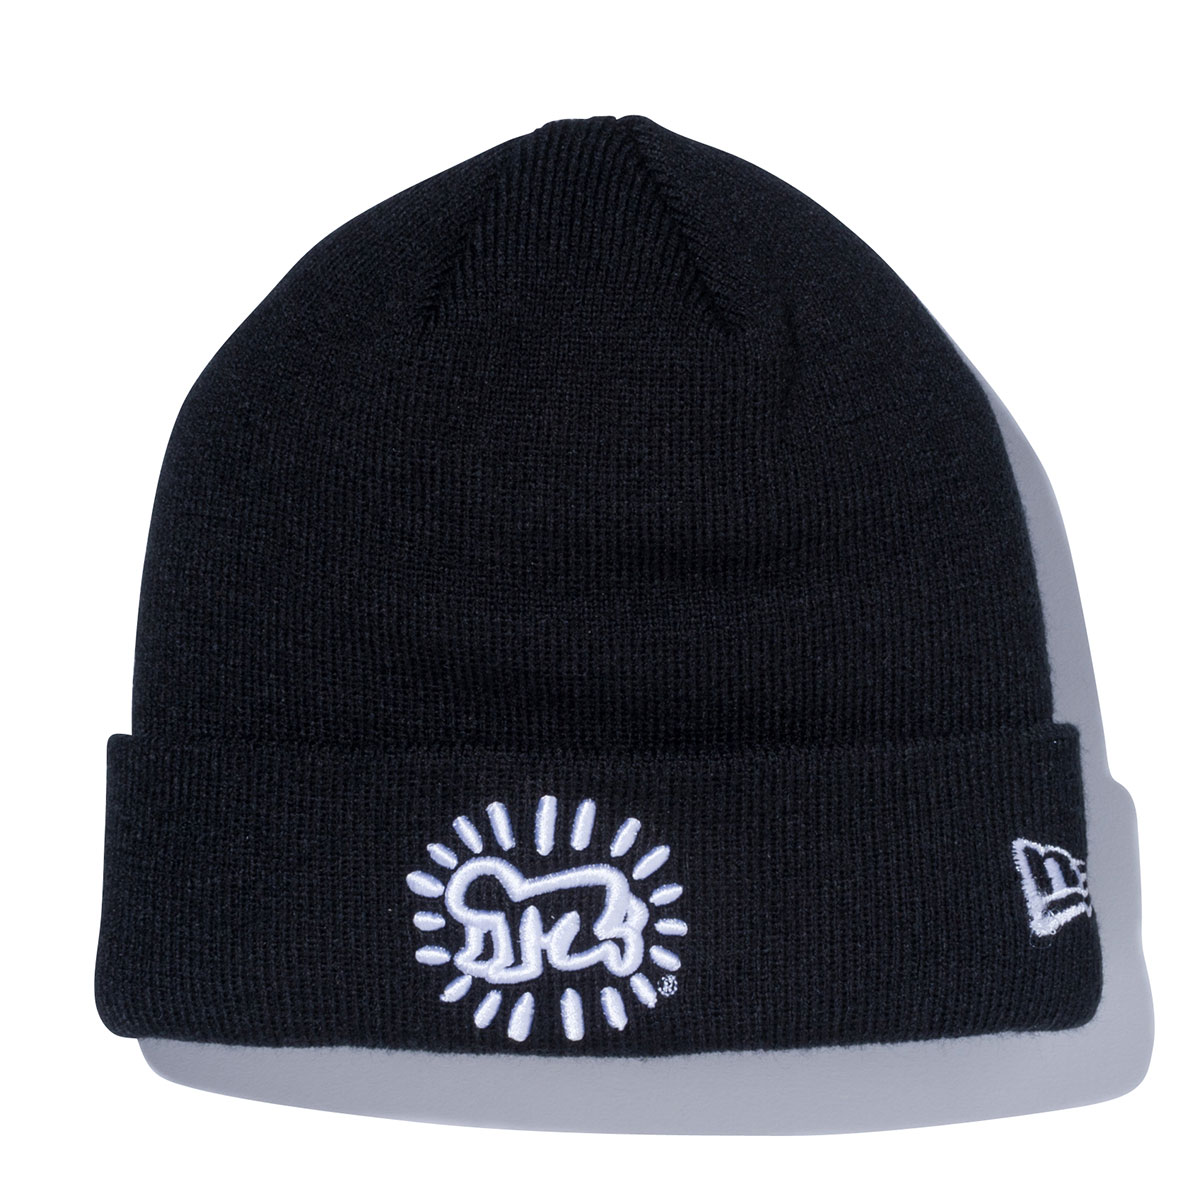 CKNIT MID KEITH HARING BABY ニットキャップ